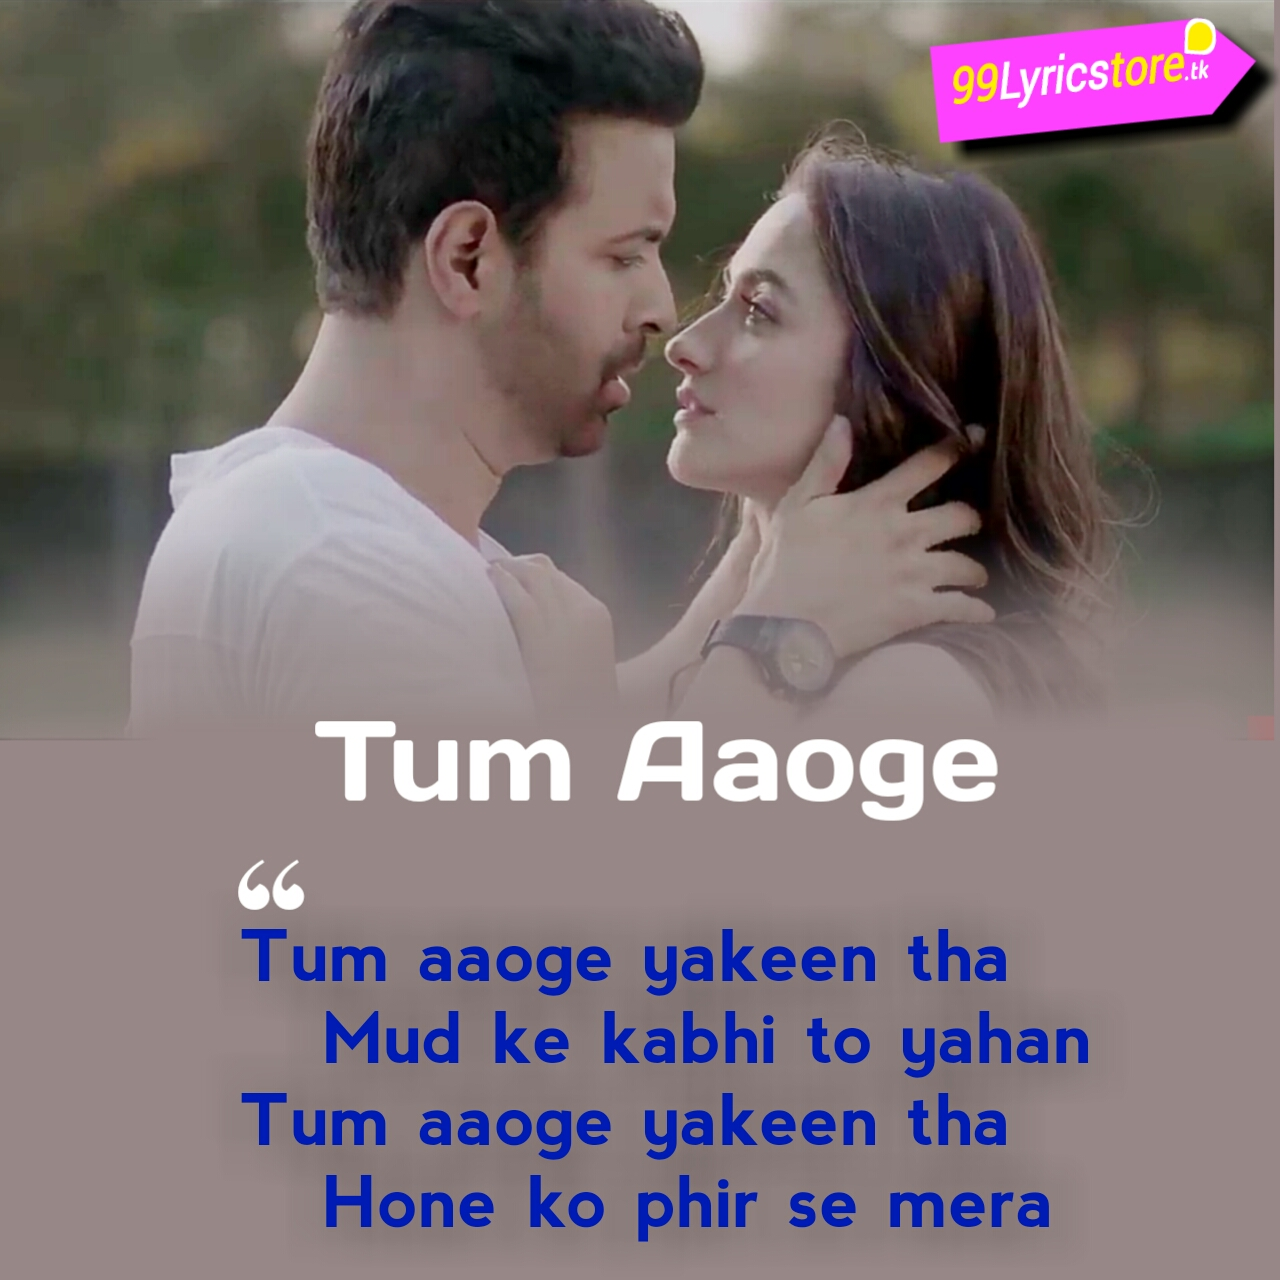 Soham Naik Song Lyrics, Latest Album Song Lyrics, Love Quotes in Hindi, Hindi Song Lyrics